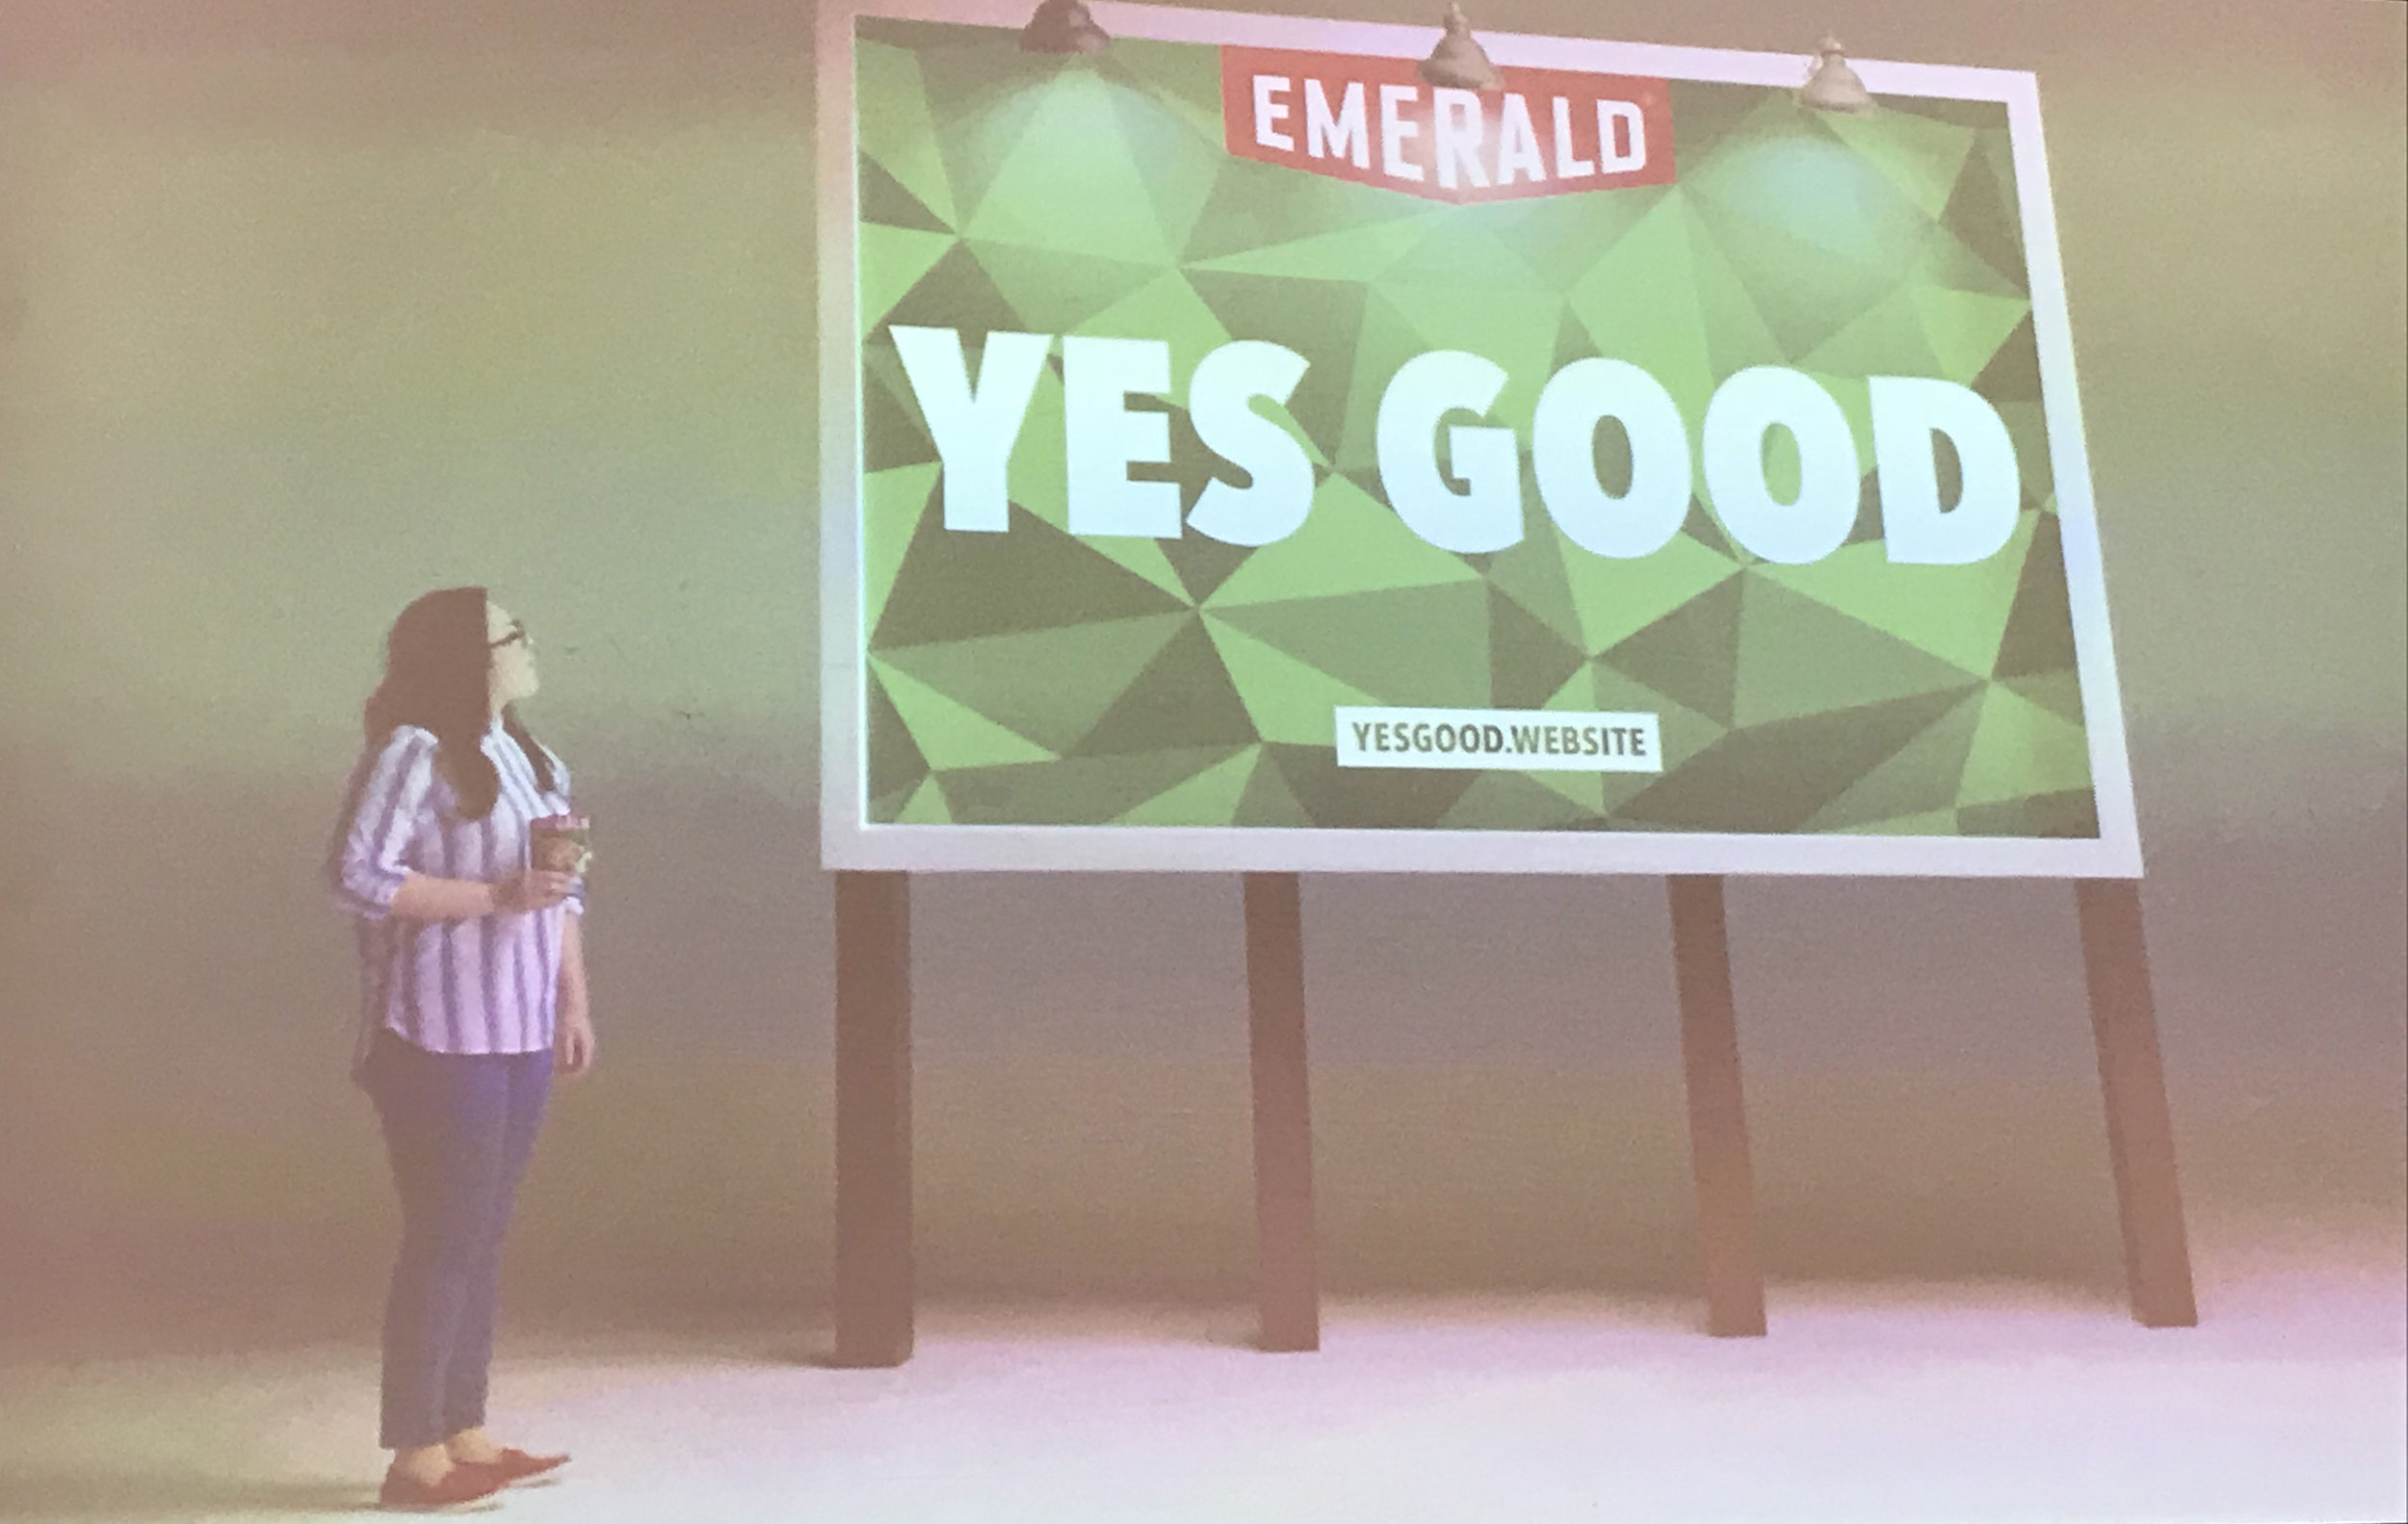 Emerald Nuts turned one of its first (and shortest) customer reviews into its tagline.